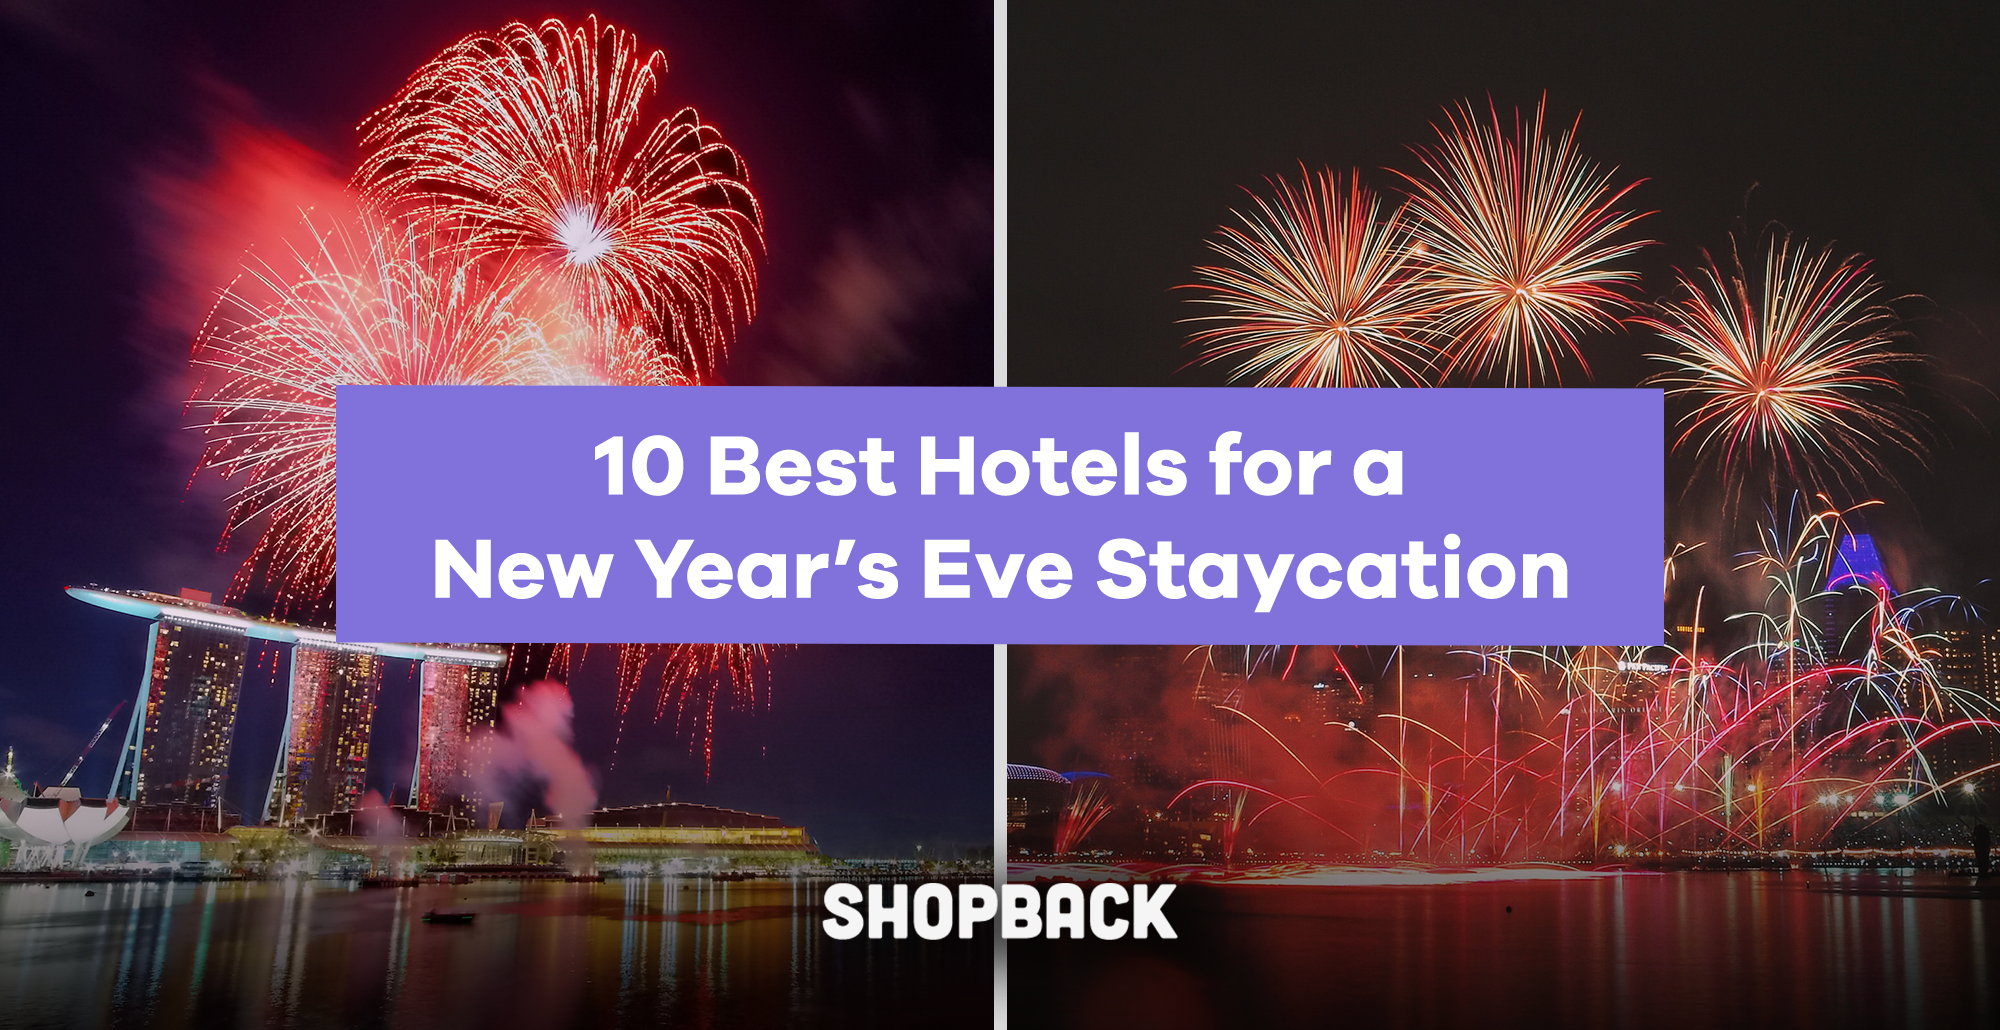 New Year Eve Staycation Singapore